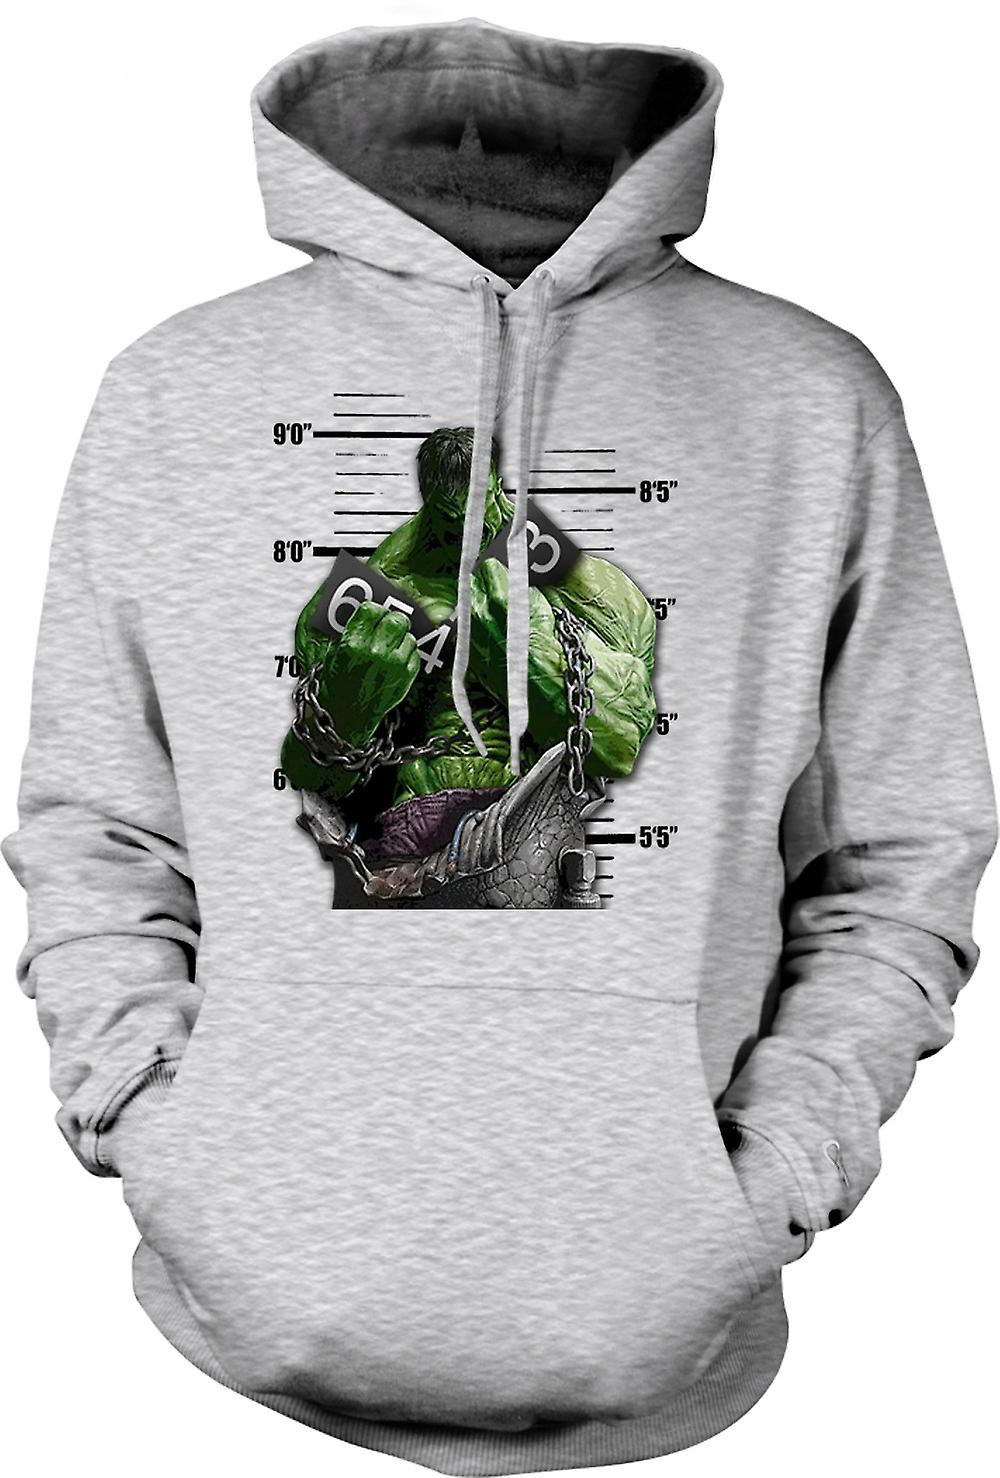 Mens Hoodie - The Hulk - Cartoon - Chains